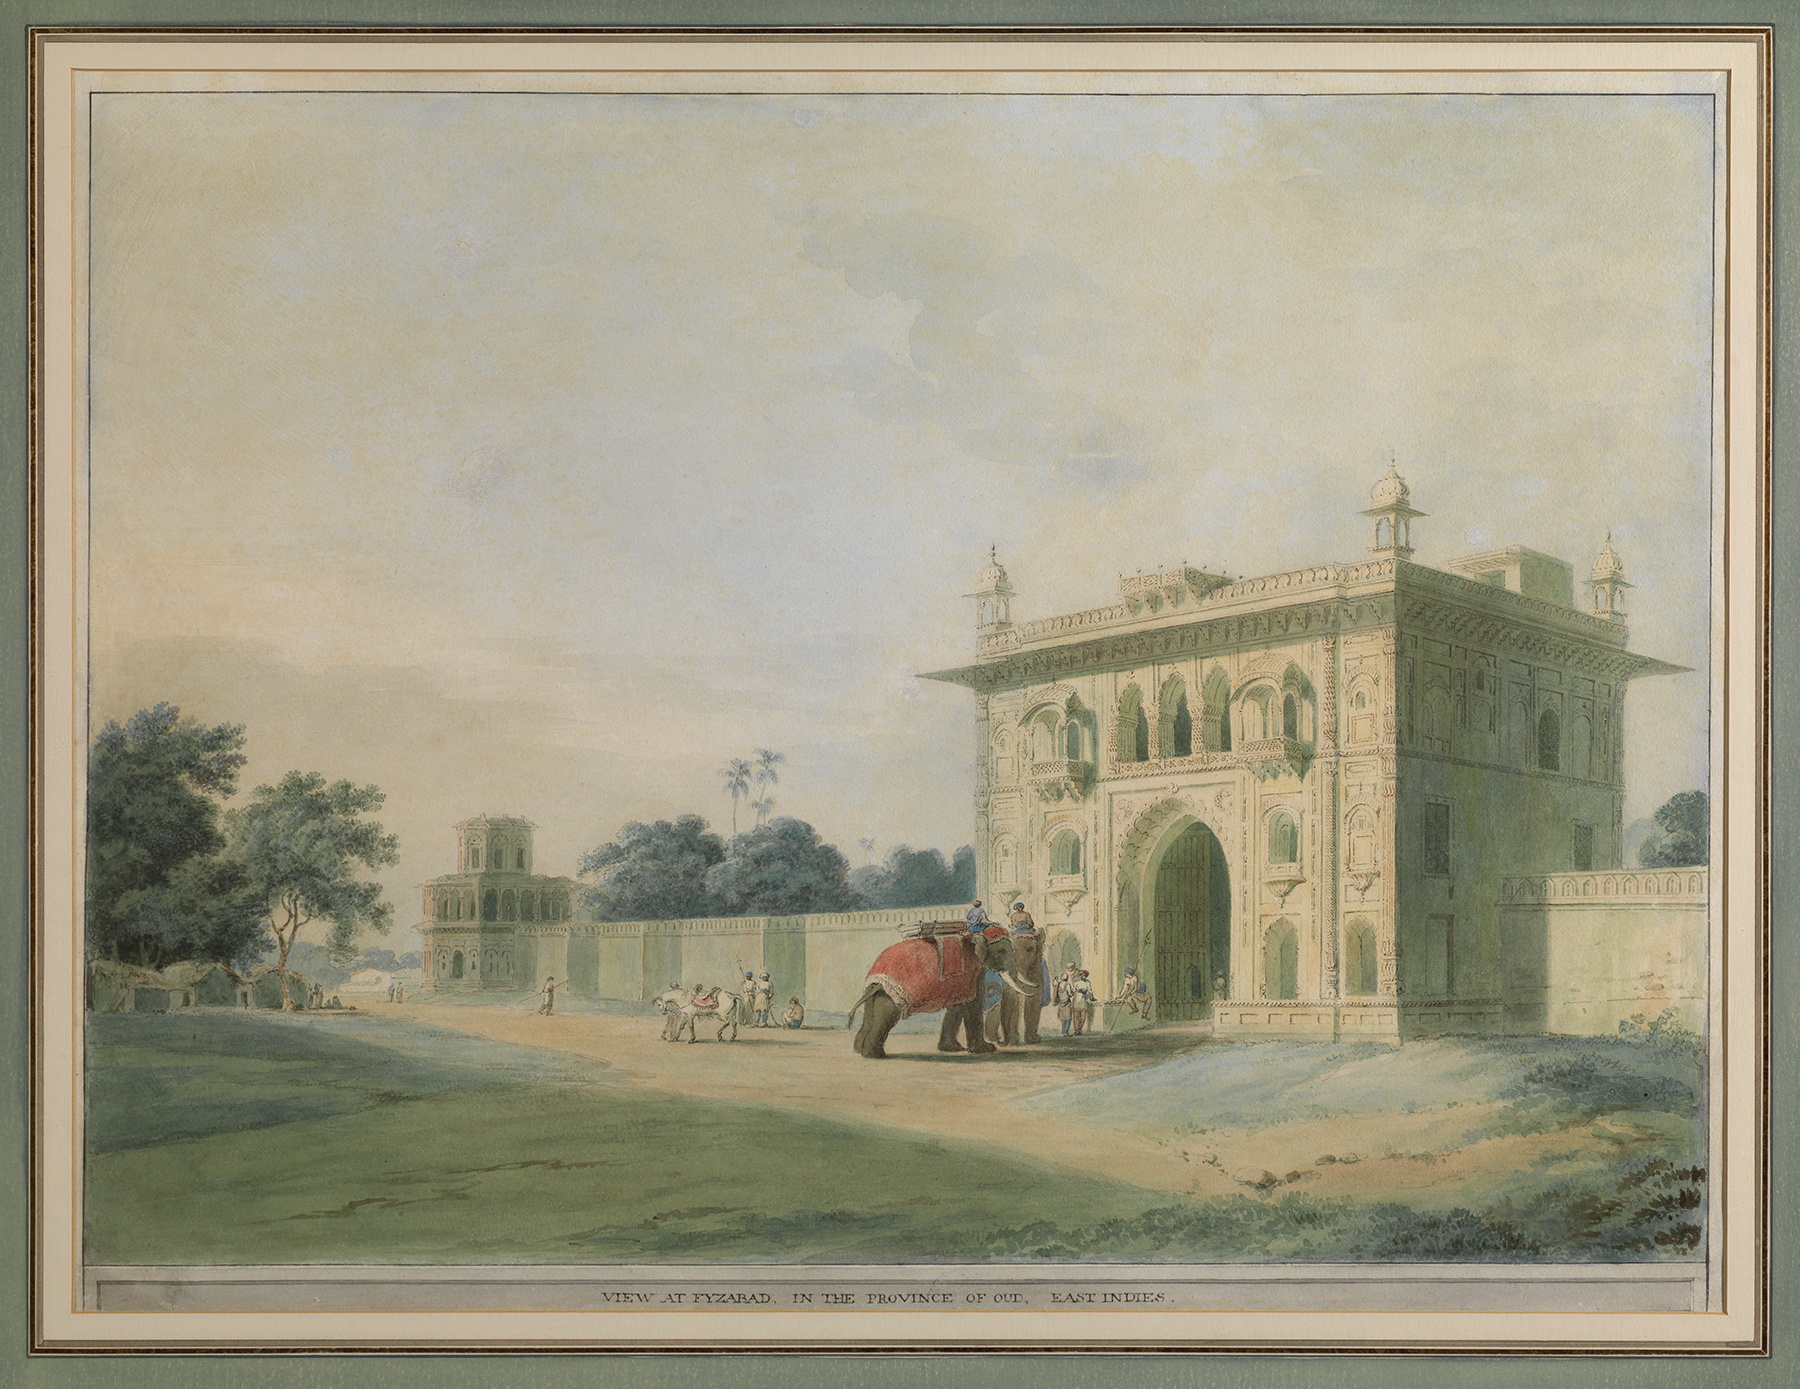 William Daniell (1769-1786), The Lalbagh Gate at Faizabad, Watercolour on paper, 48 by 64 cm.